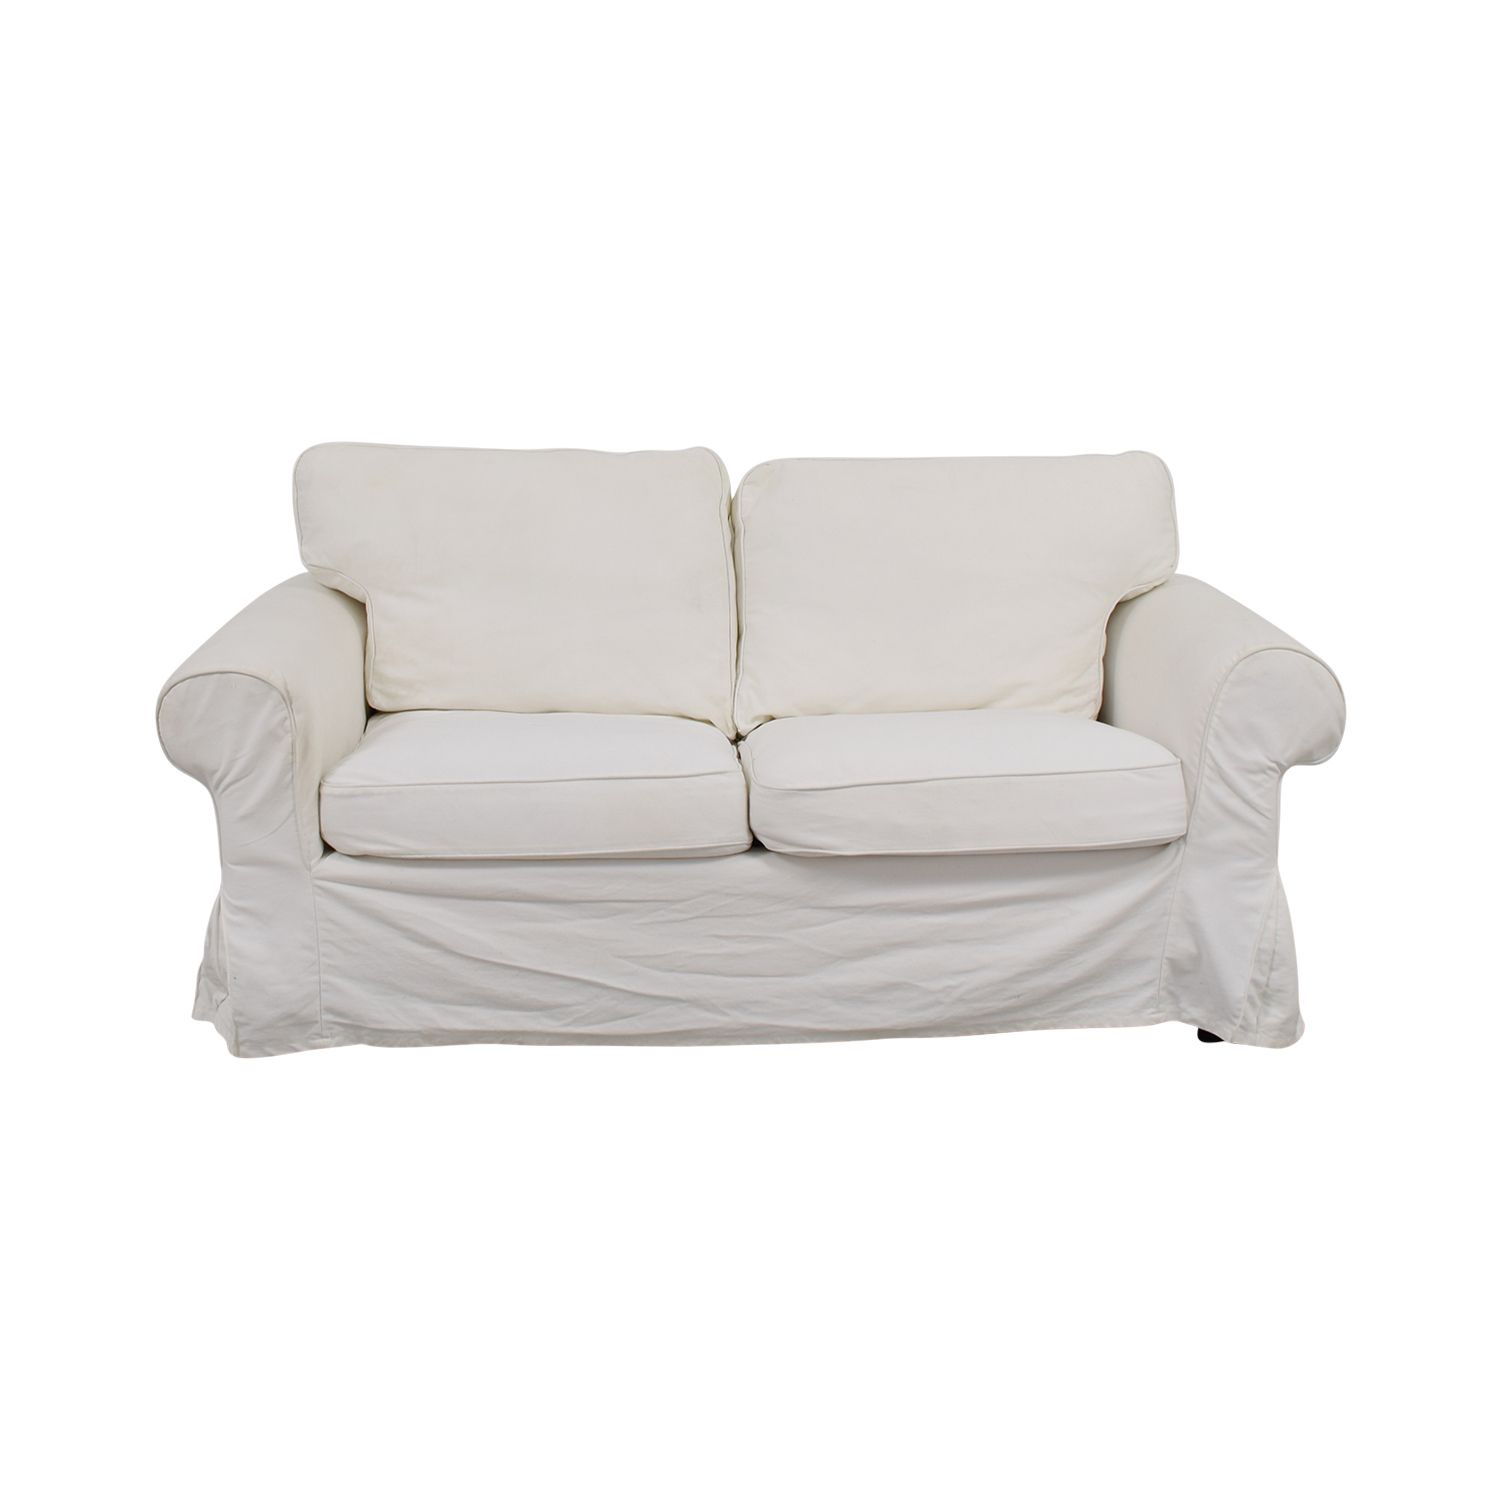 ikea rp corner sofa covers uk latest design photos loveseat pull out bed foter thesofa